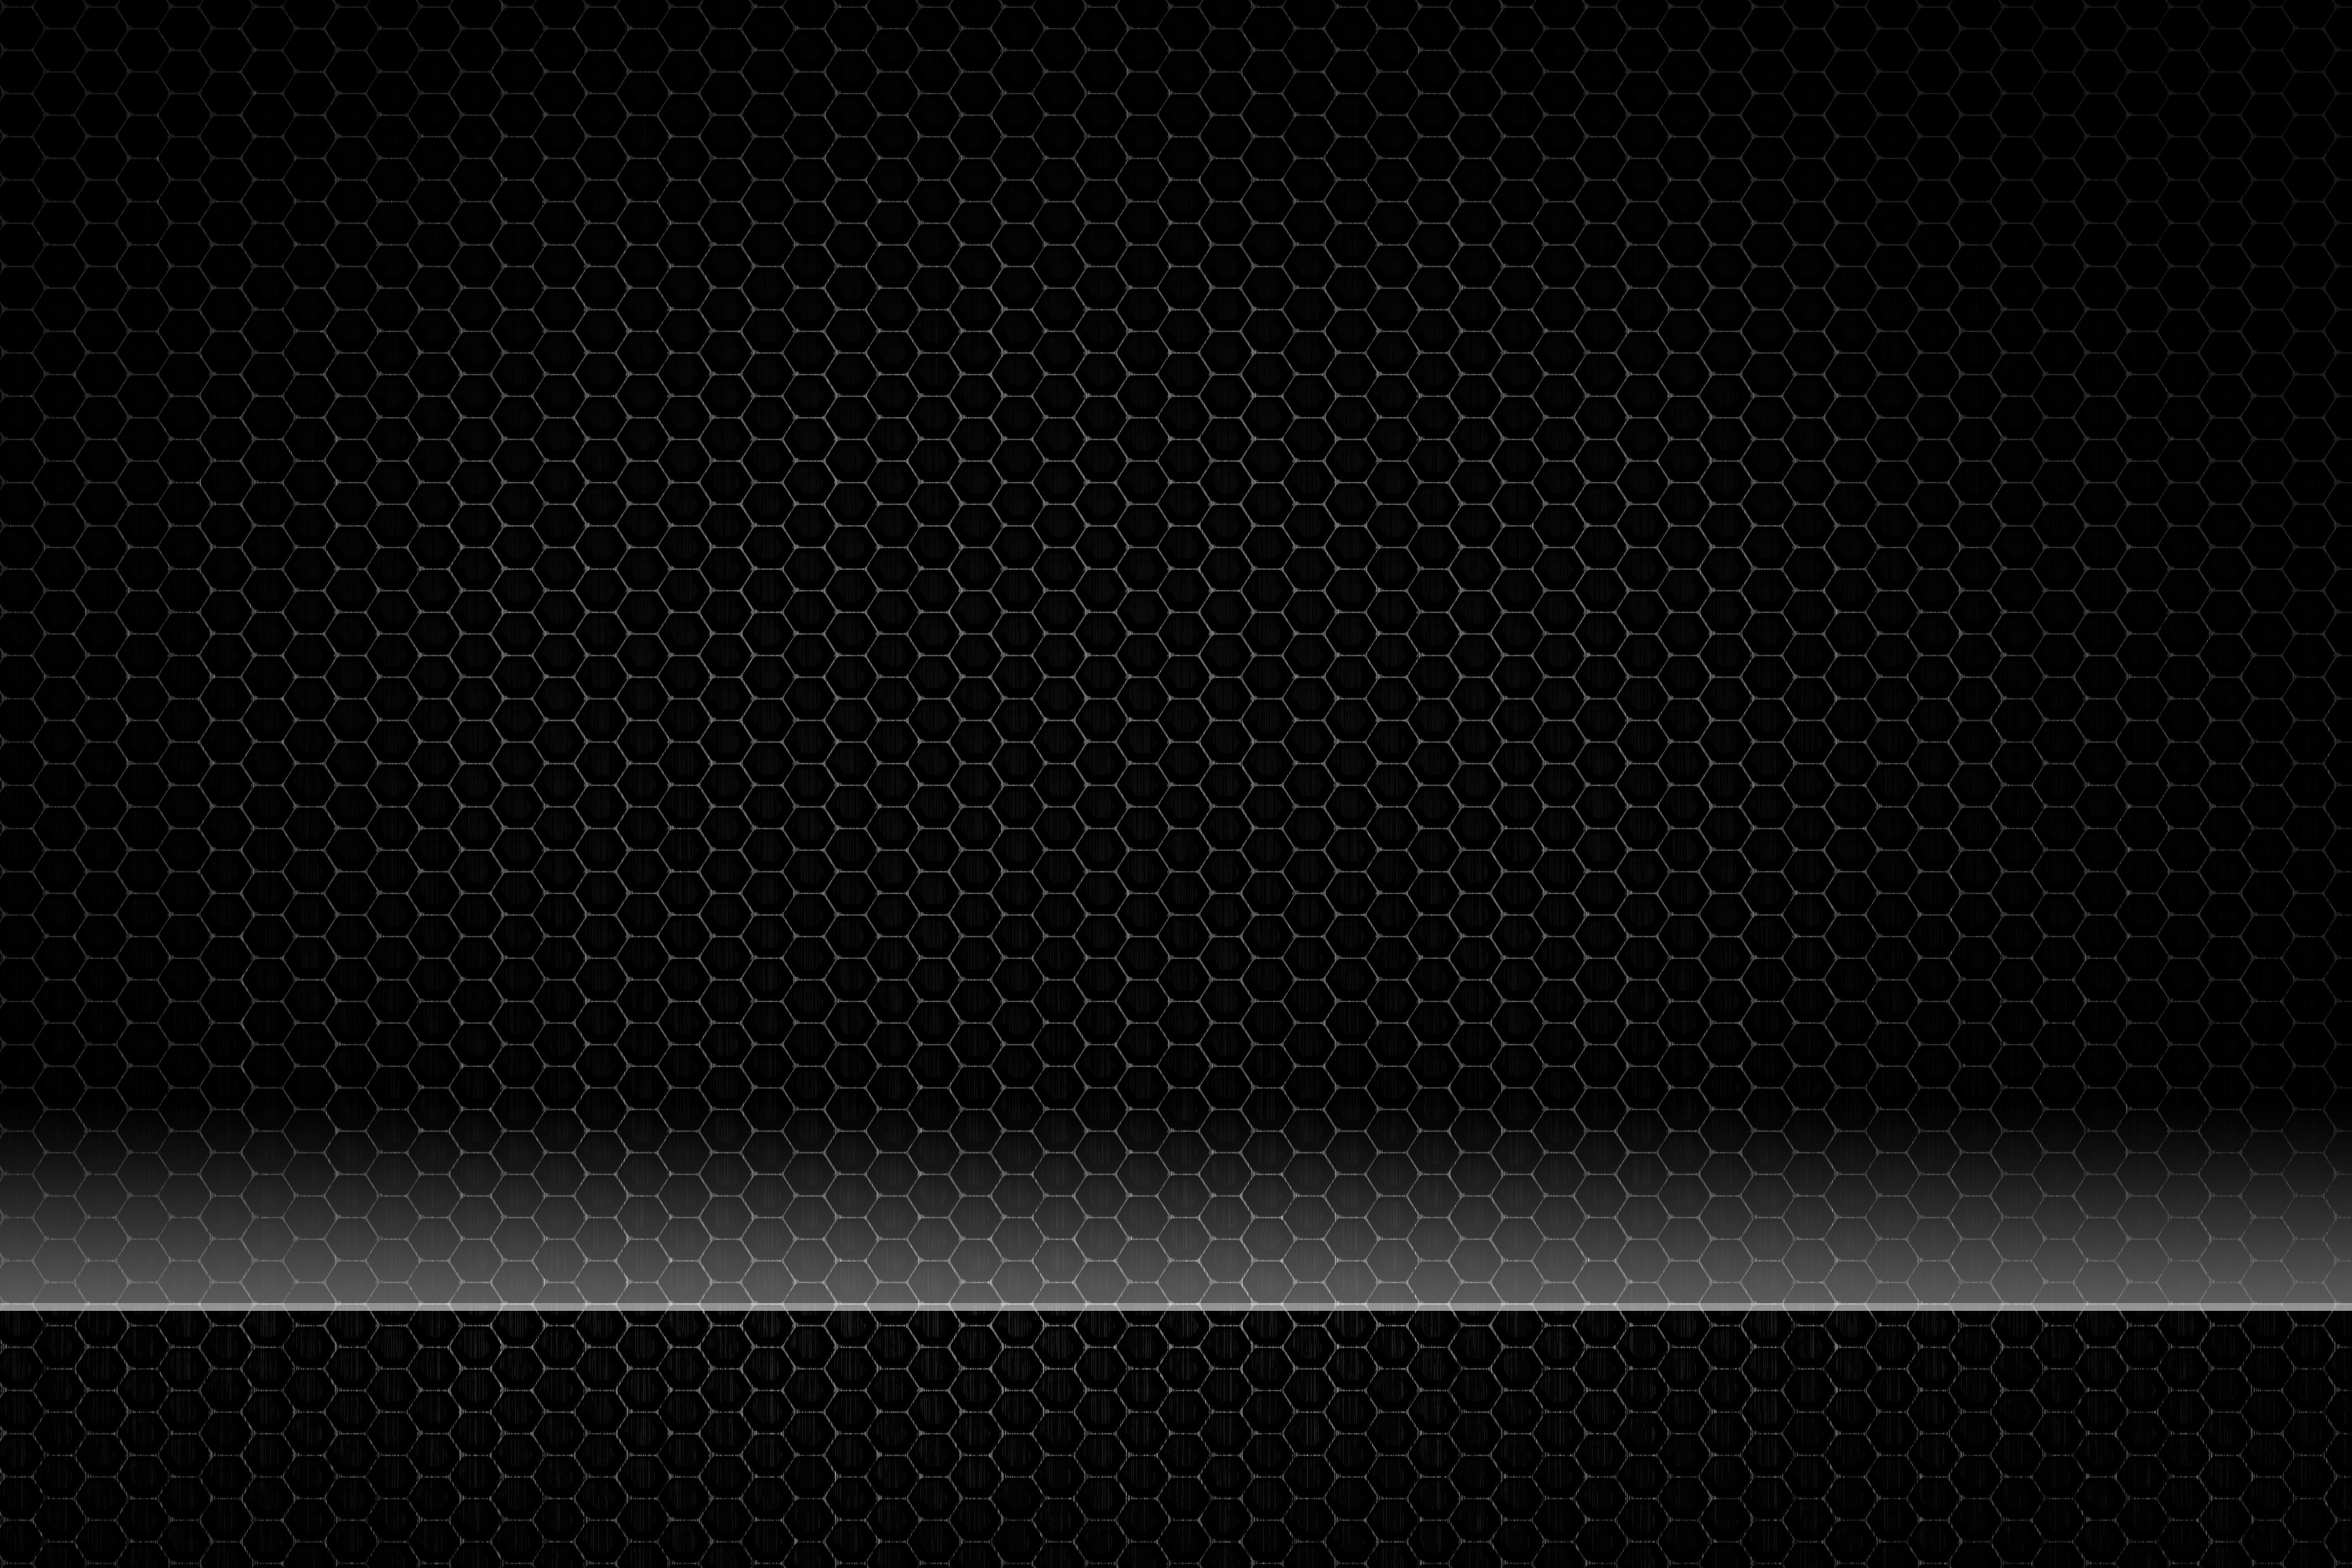 Background image maker -  Movie Maker Power Point Background By Trexasaurusman